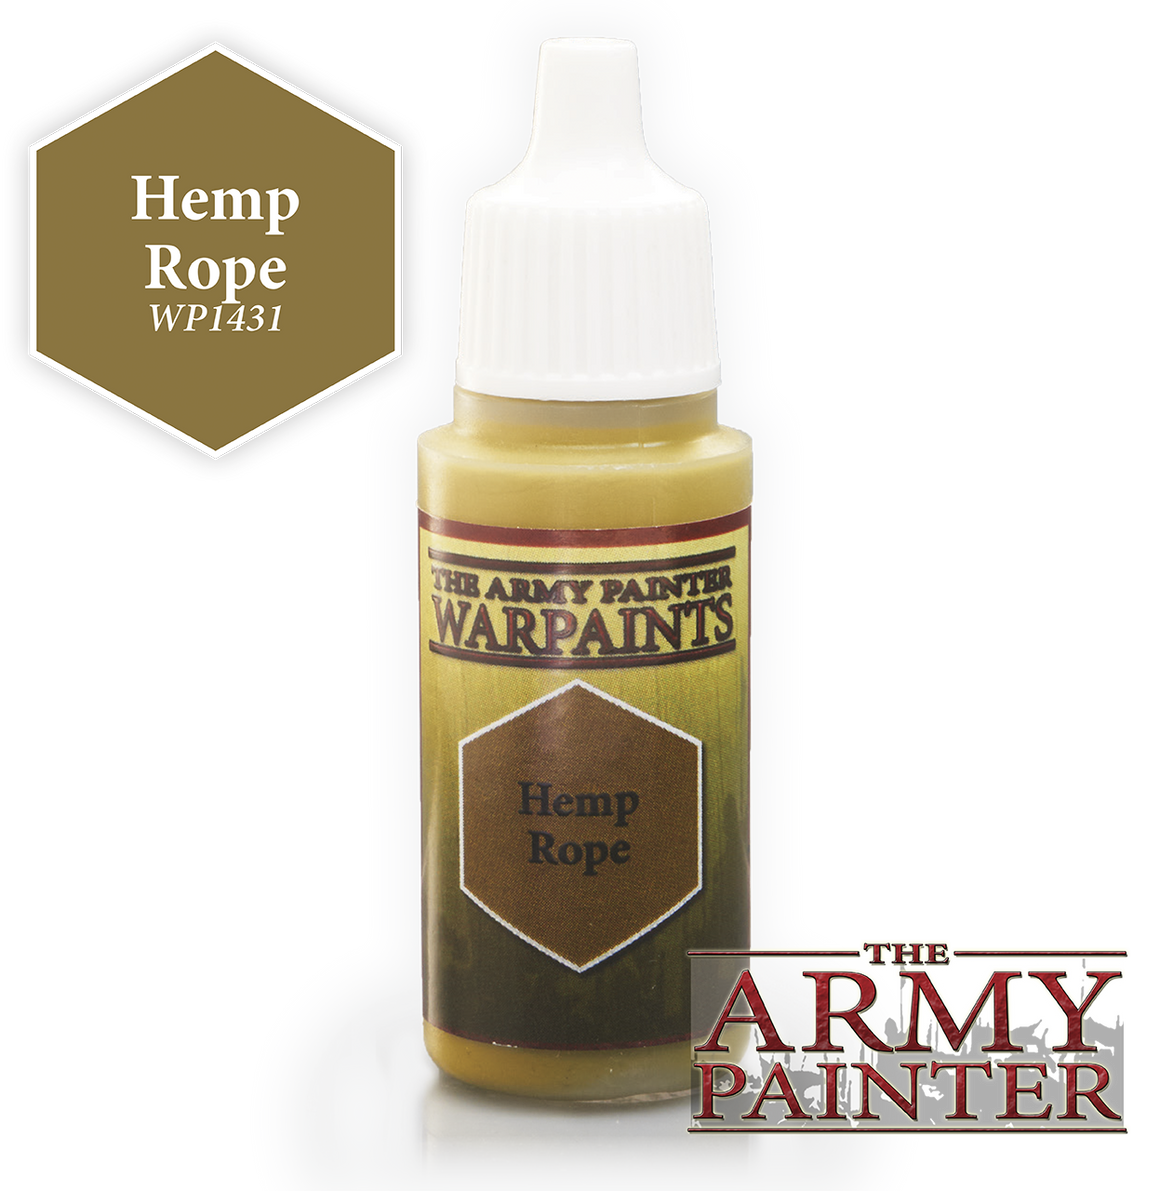 Army Painter Acrylic Warpaint - Hemp Rope